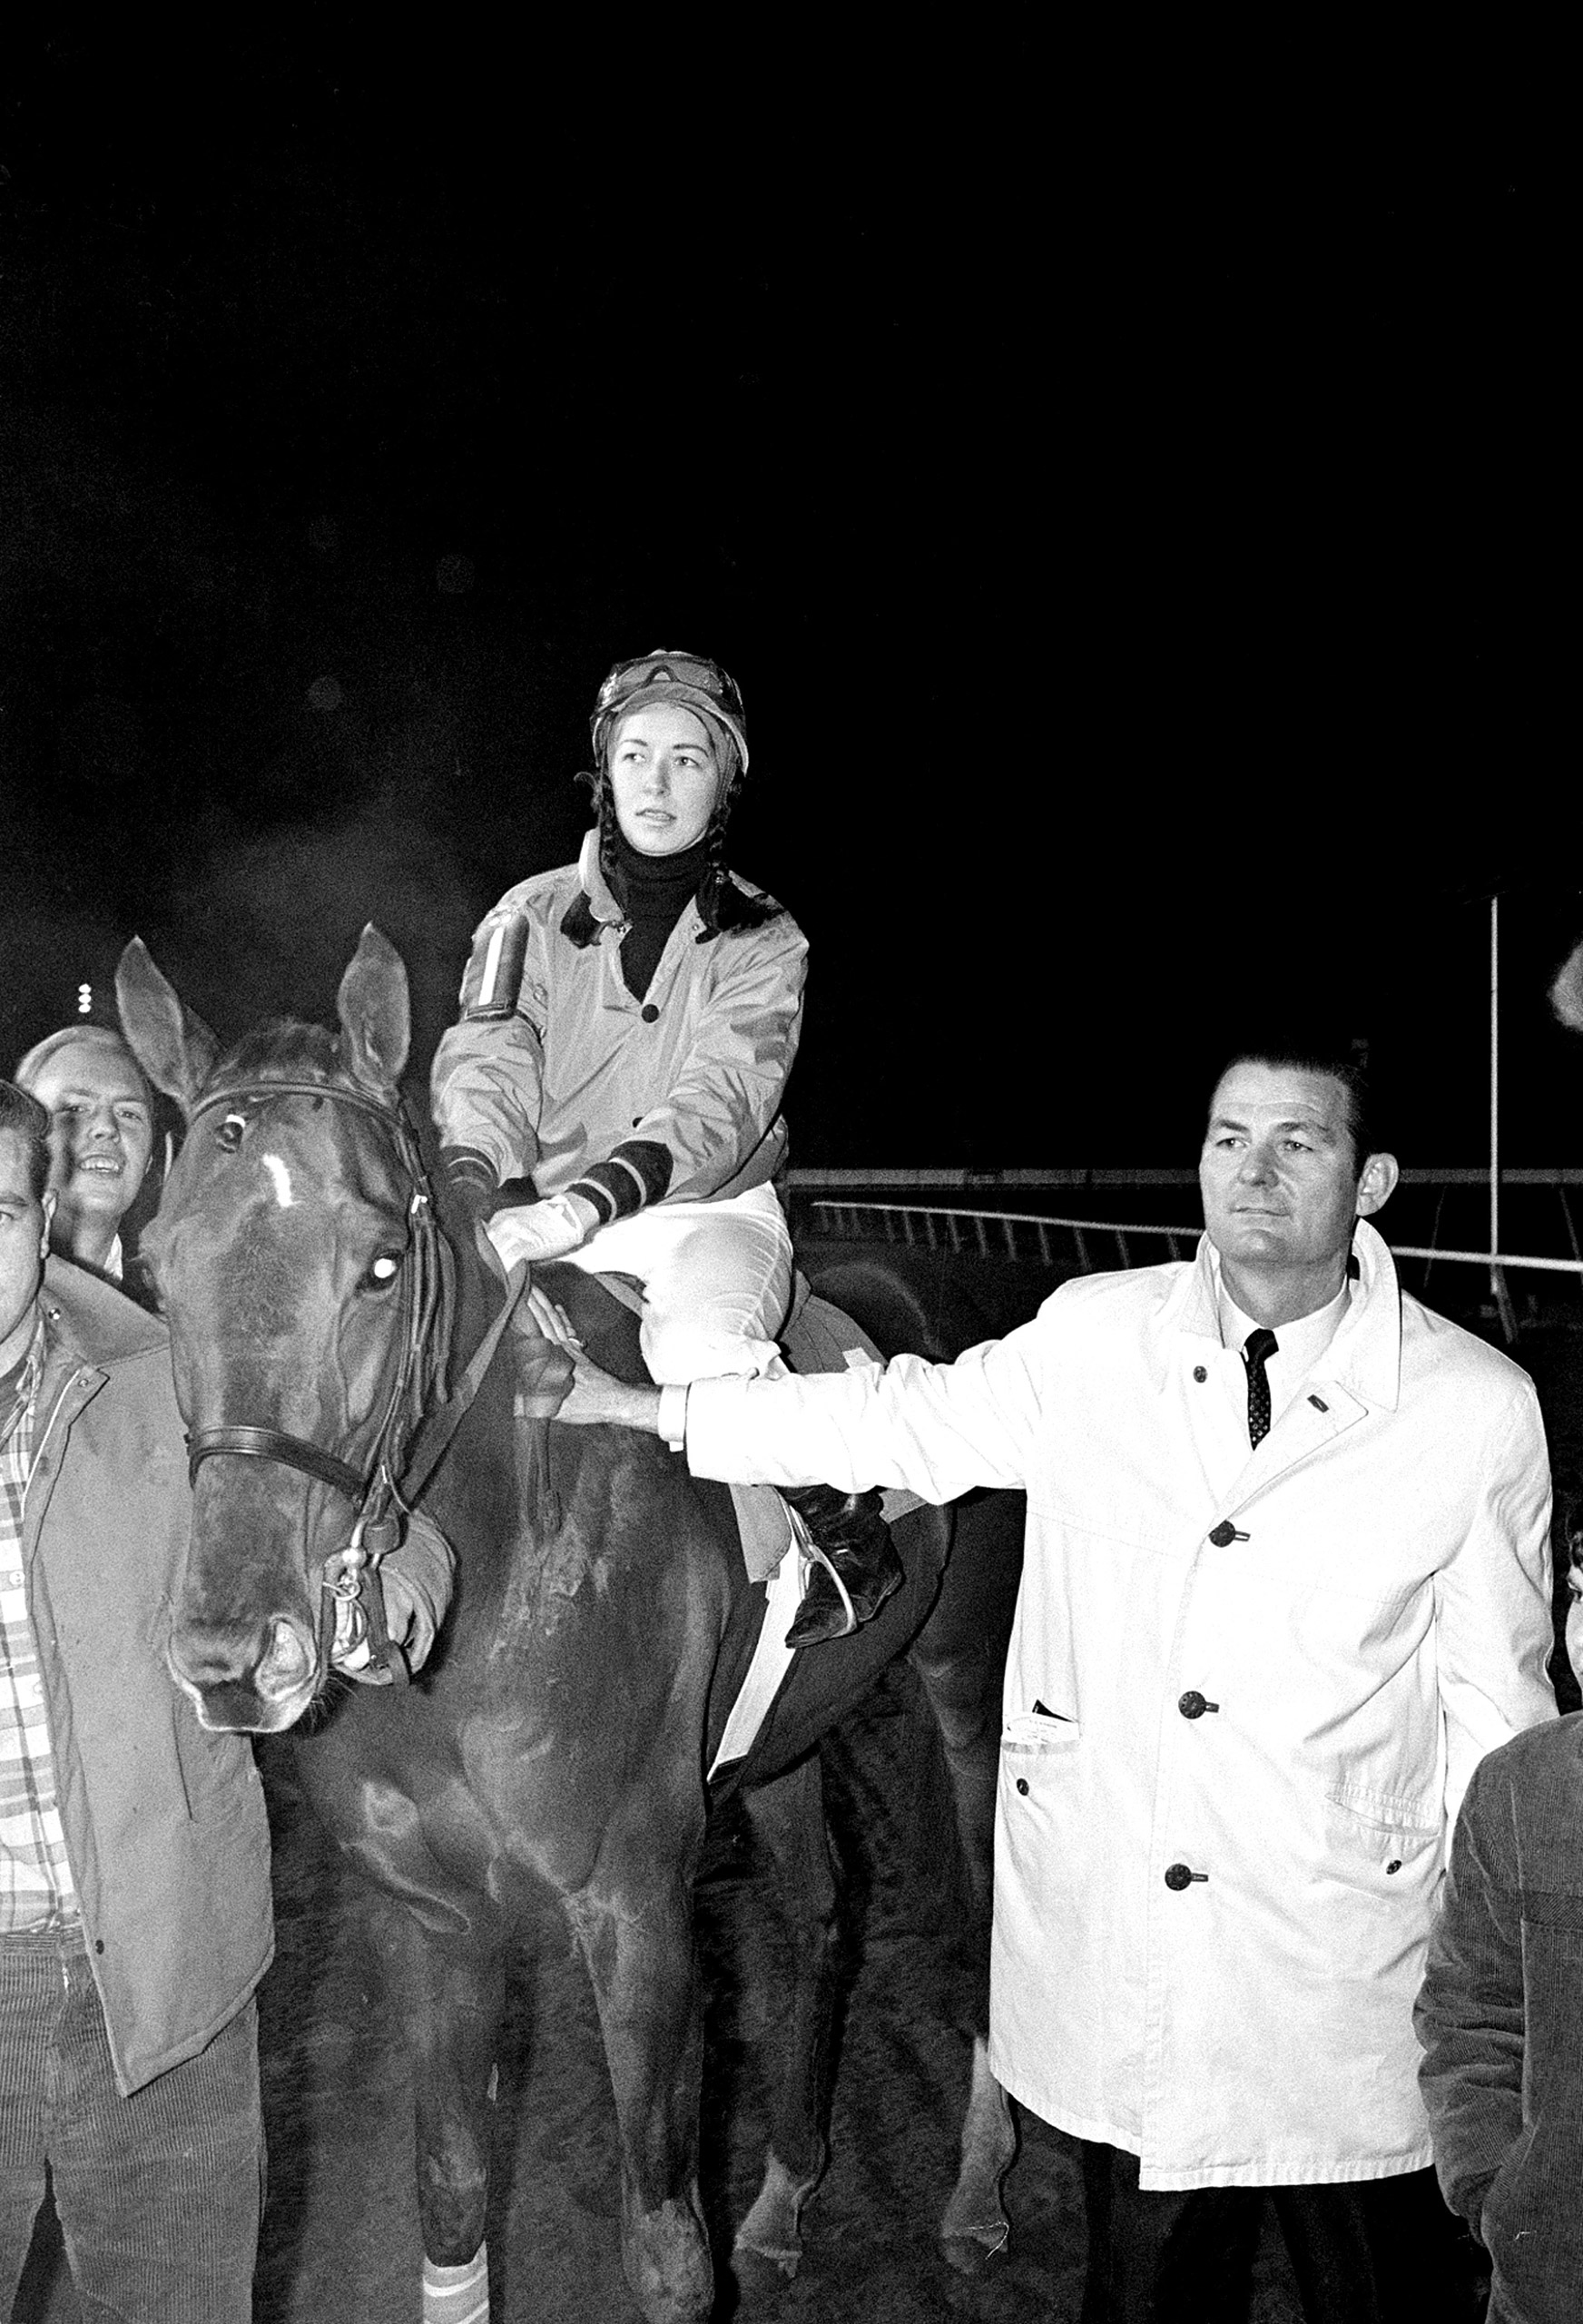 Barbara Jo Rubin, 19-year-old veterinary student from Miami, holds the reins of her horse Cohesion, shortly after she rode him to victory at the racetrack of Charles Town, W.V., thus becoming the first female jockey to win a major pari-mutuel flat race in the United States, on Feb. 23, 1969. Later that year she became the first woman to ride in the Kentucky Derby. It wasn't an easy ride: TIME noted that she had had her dressing-room window smashed by a rock during a jockey boycott.